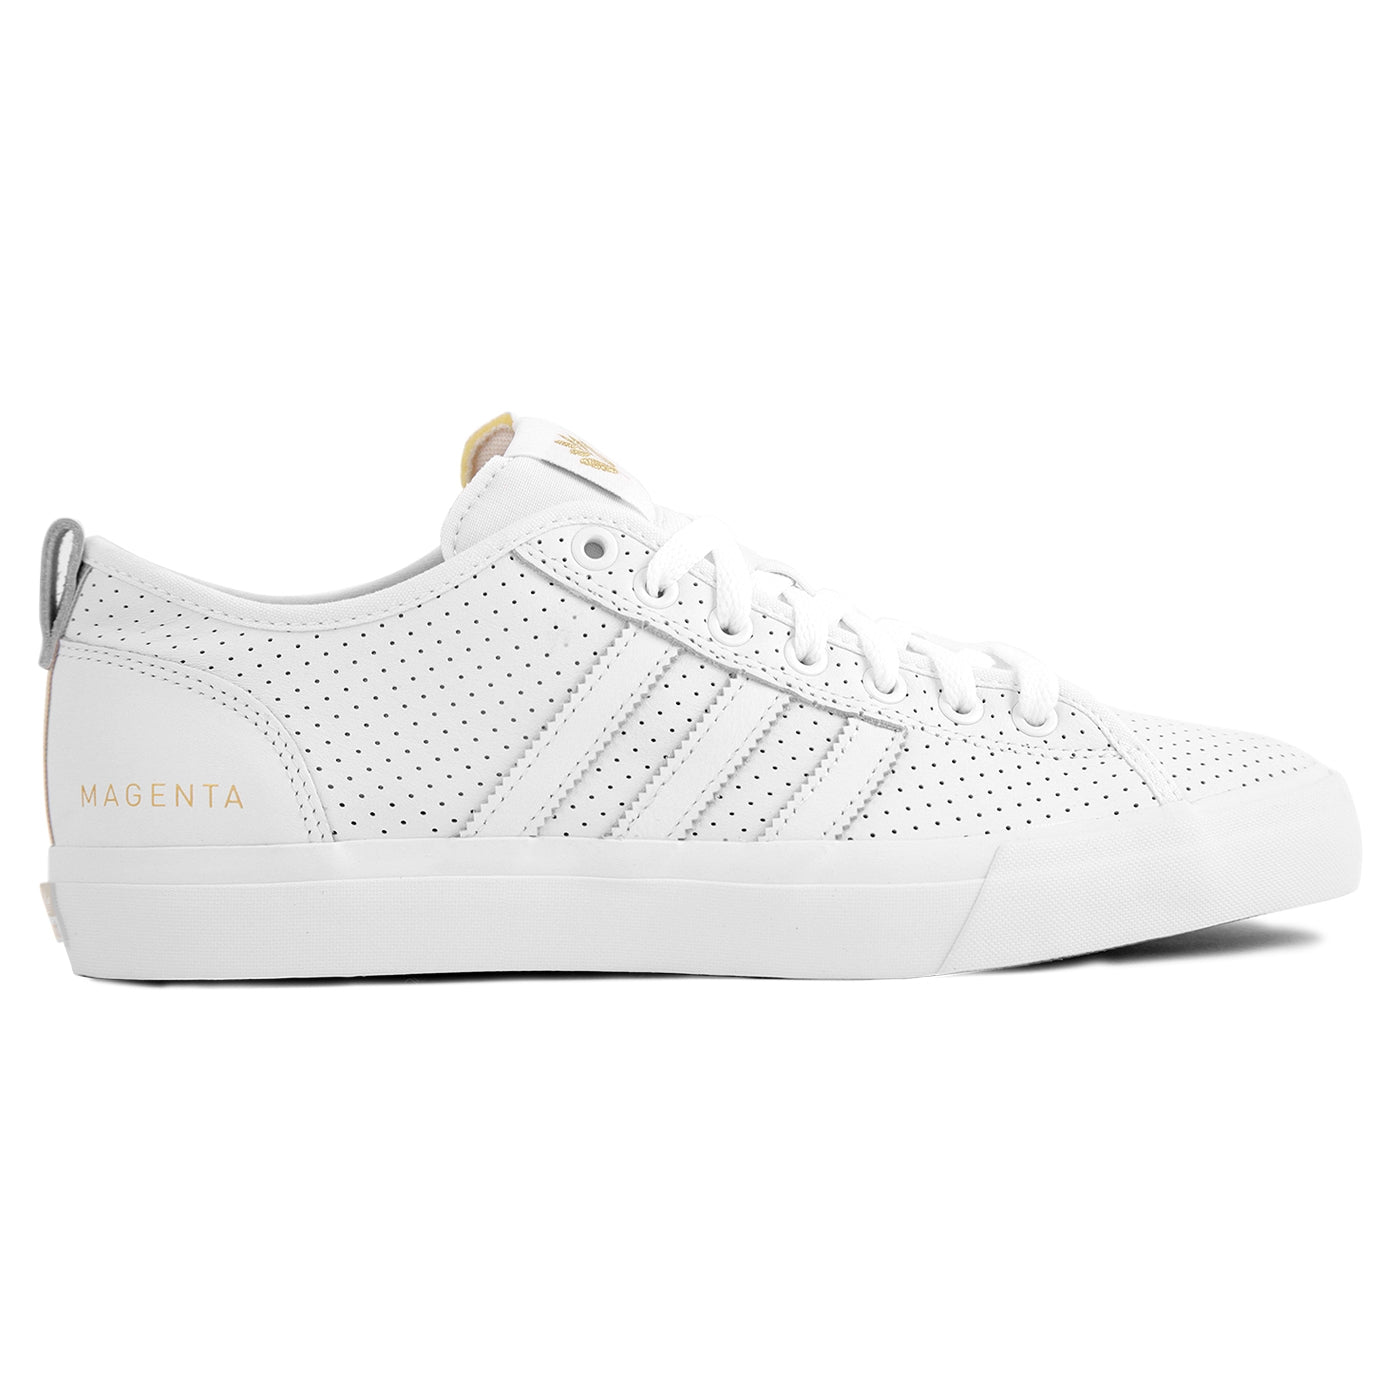 sports shoes 67ab9 4cca1 Adidas x Magenta Skateboards Matchcourt RX Shoes - White  Gold Metallic   Gum